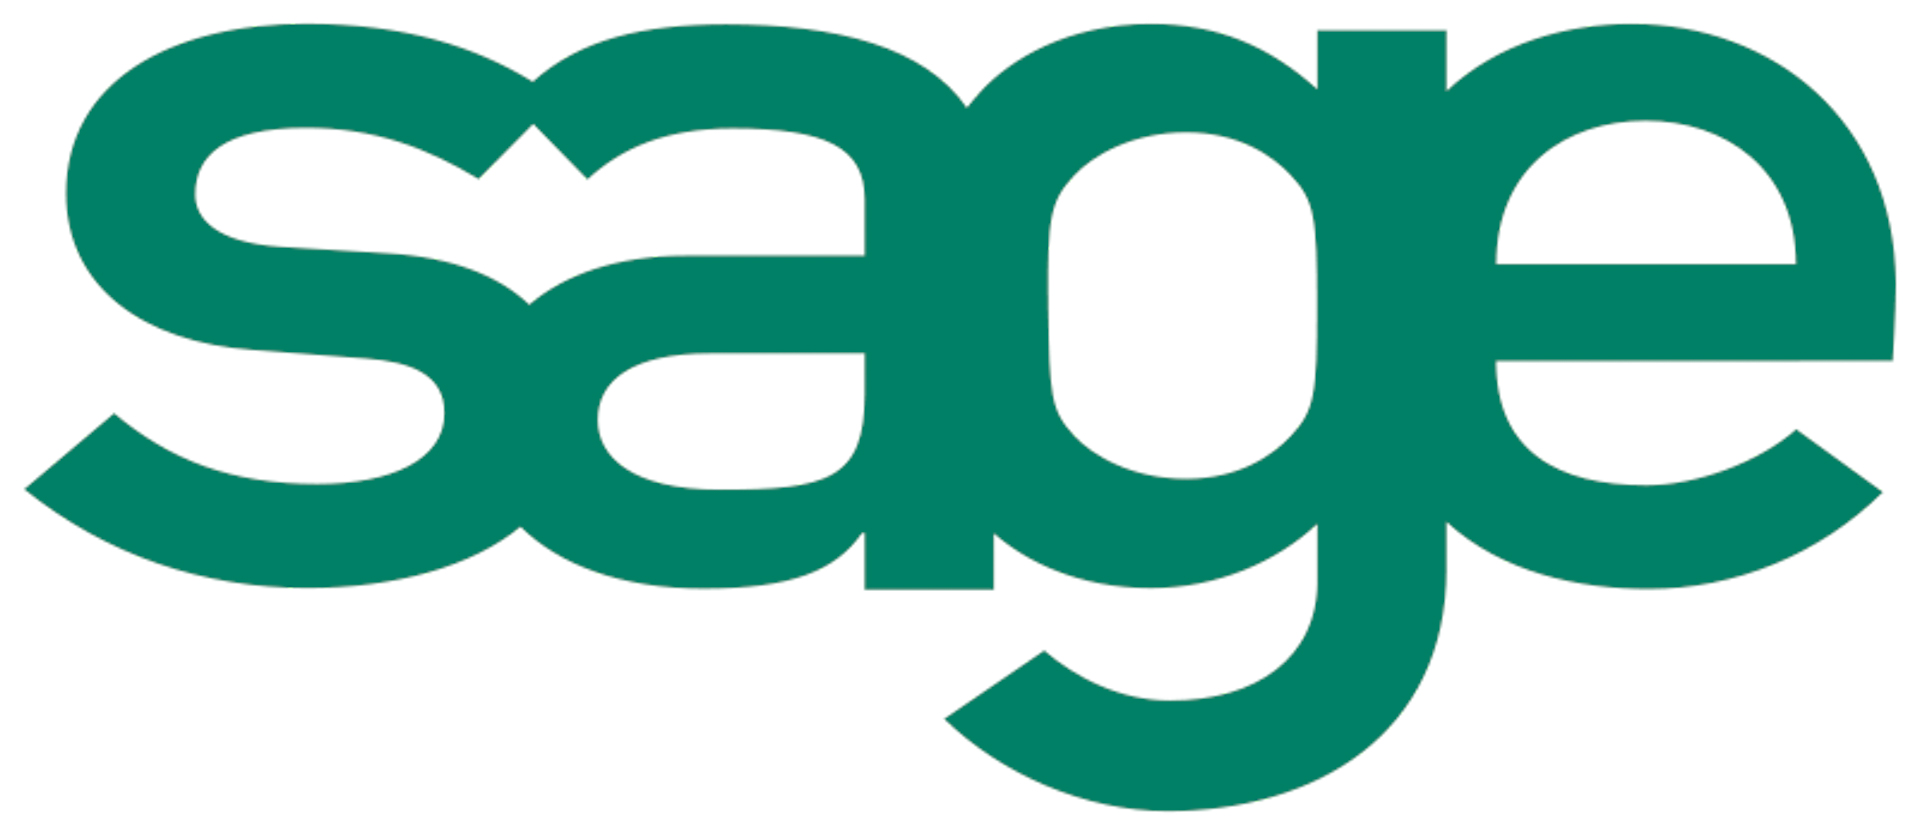 Tips & Tricks to Setting Up Sage Accounts Properly